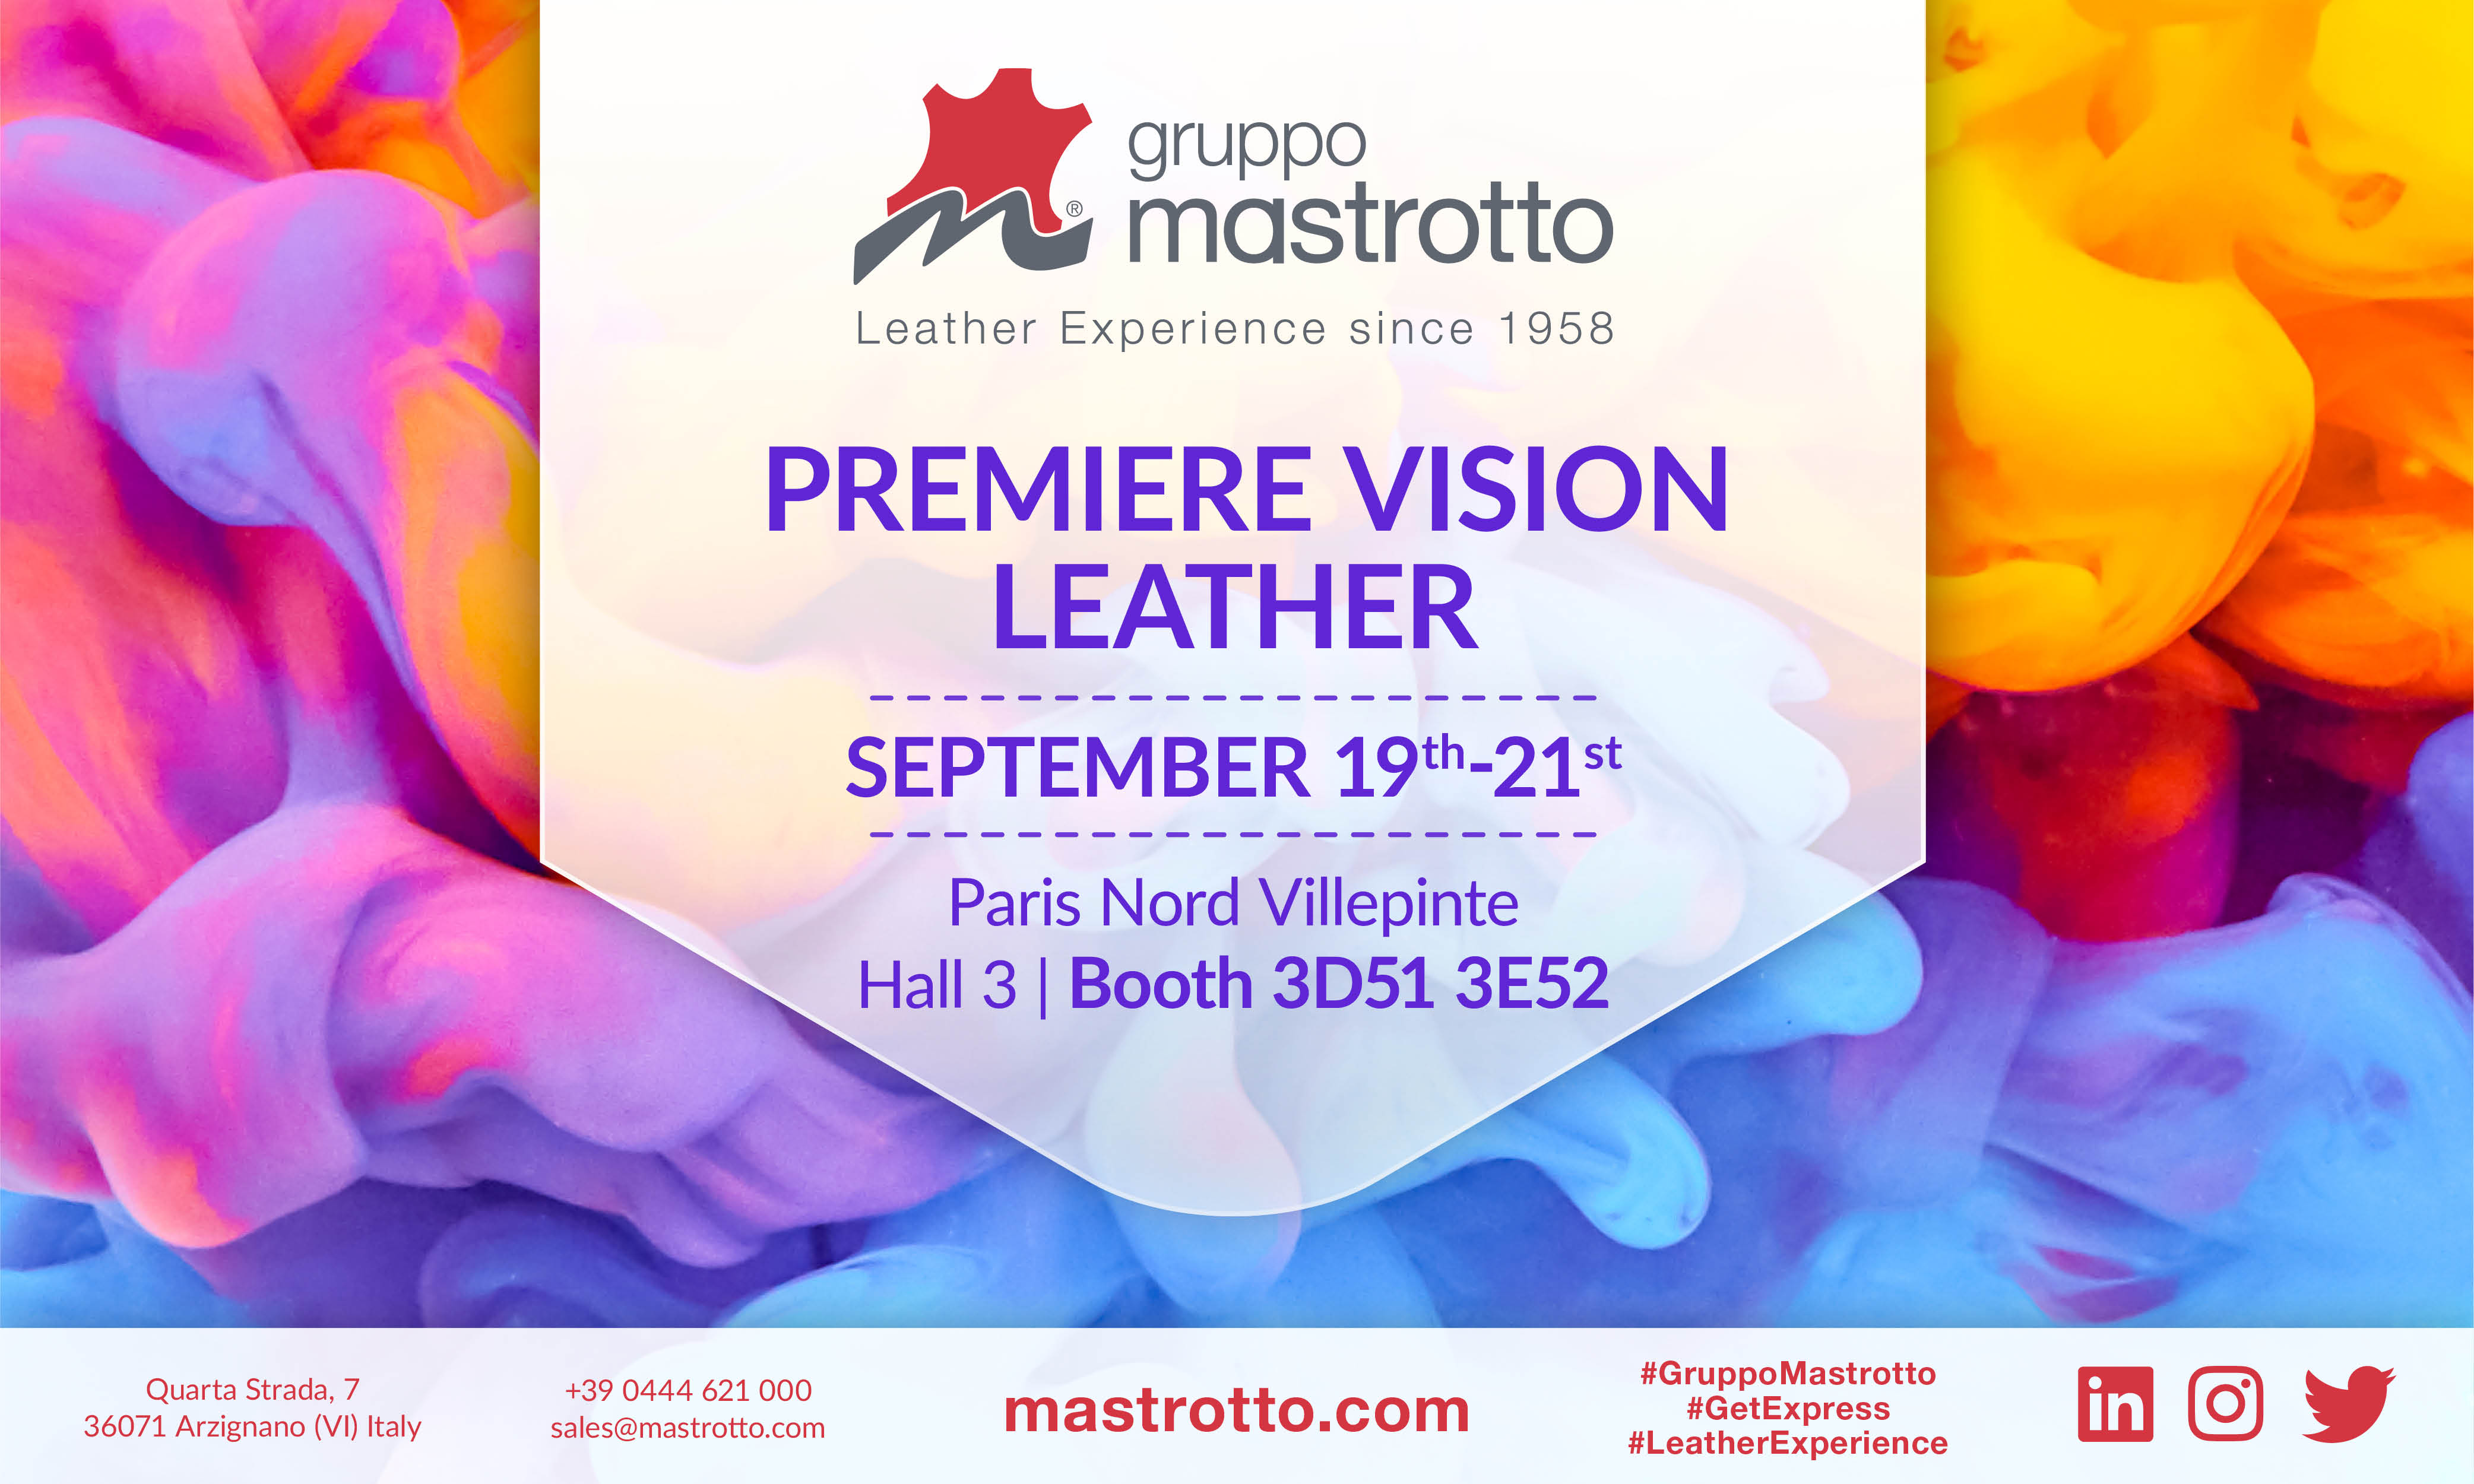 Mastrotto Premiere Vision Leather September 19th-21th2017